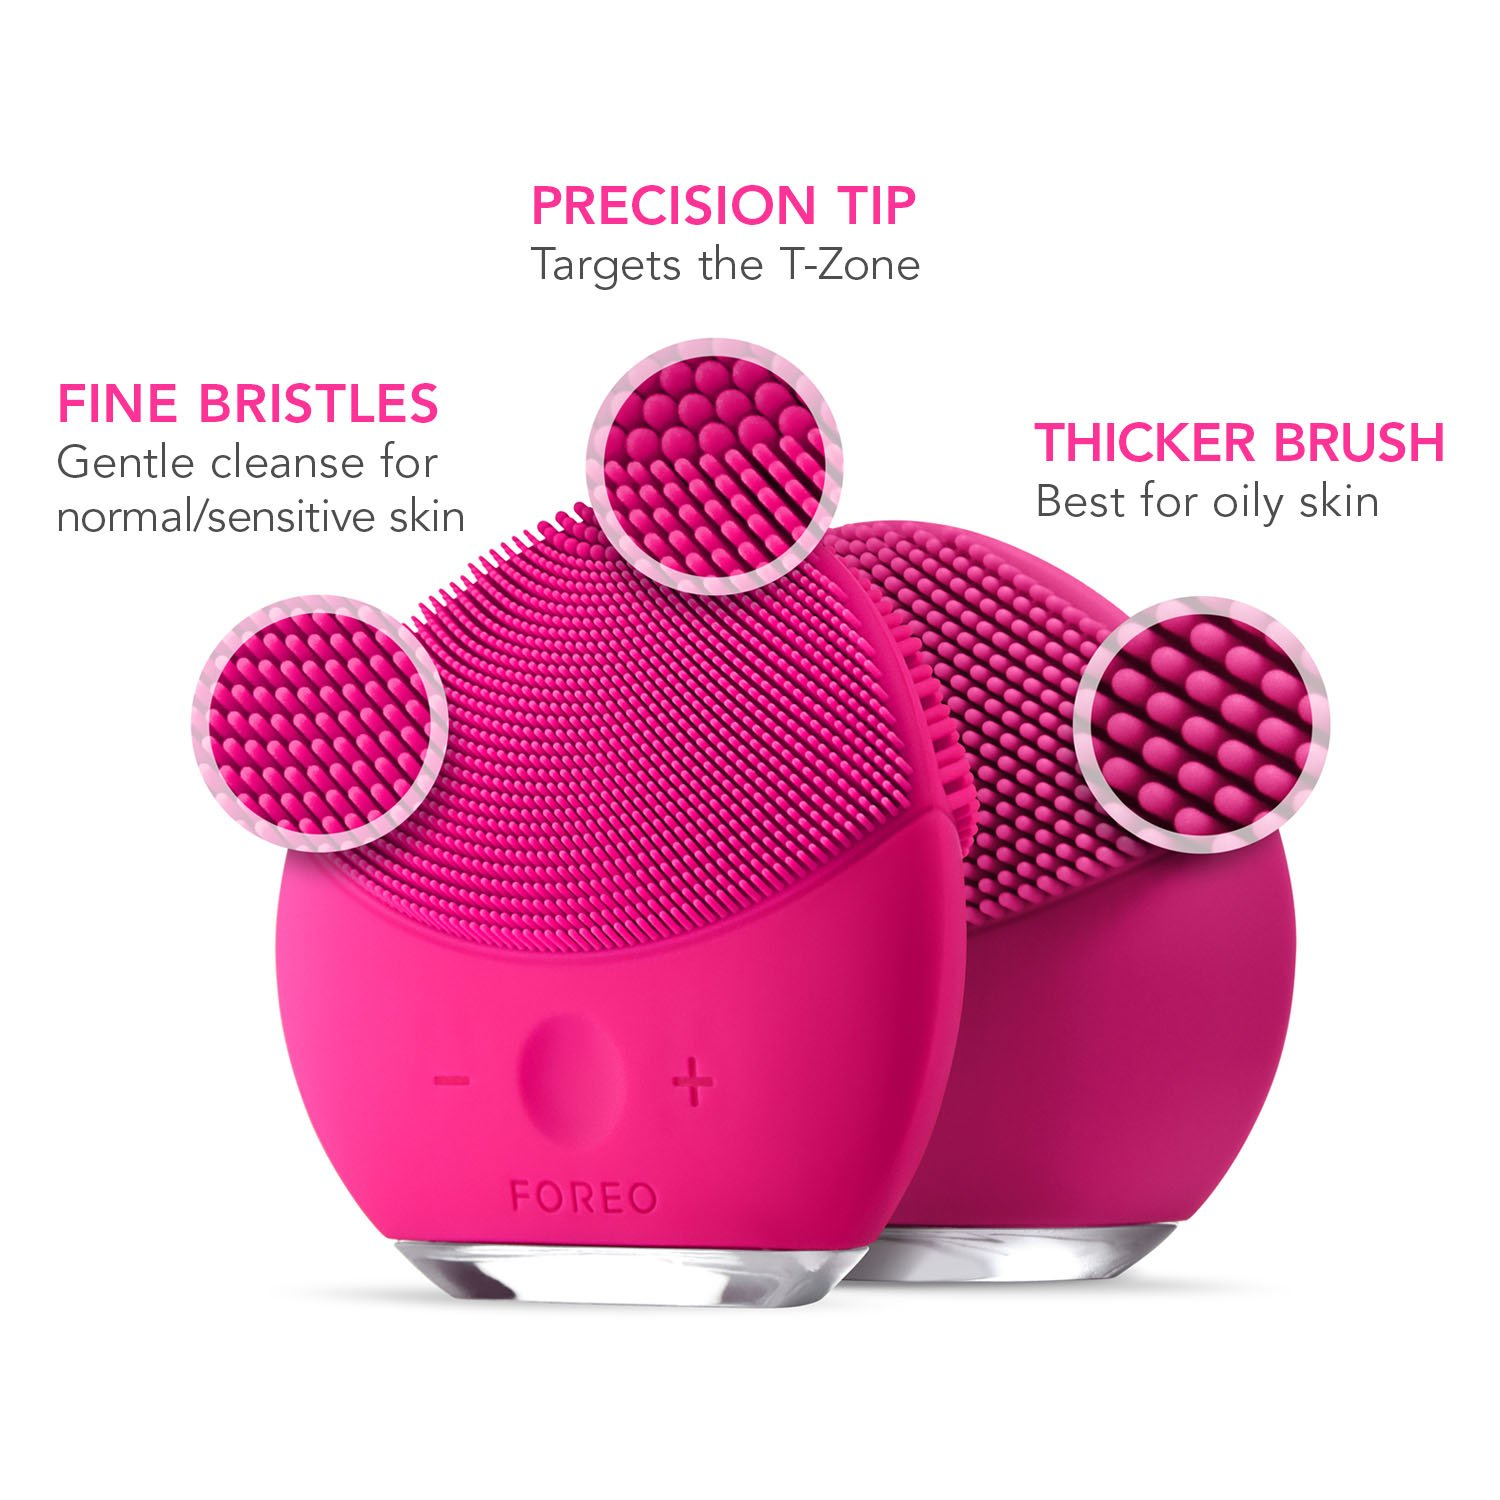 FOREO LUNA mini 2 Facial Cleansing Brush, Gentle Exfoliation and Sonic Cleansing for All Skin Types, Fuchsia by FOREO (Image #7)